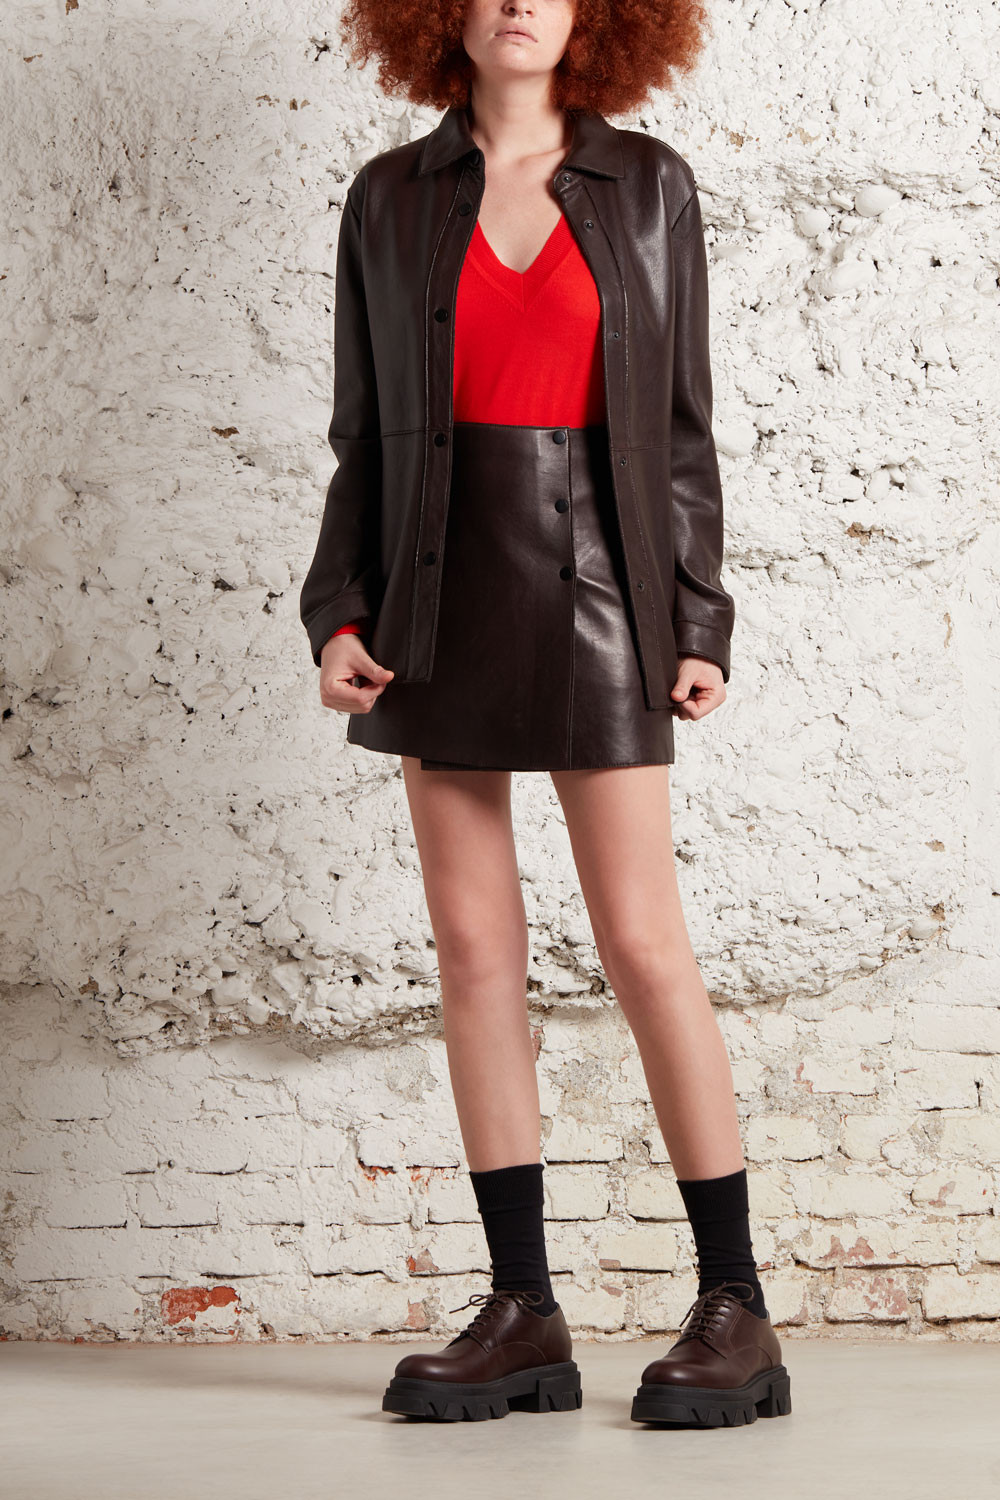 LEATHER SHIRT WITH BUTTONS - MACIOCKXD380561